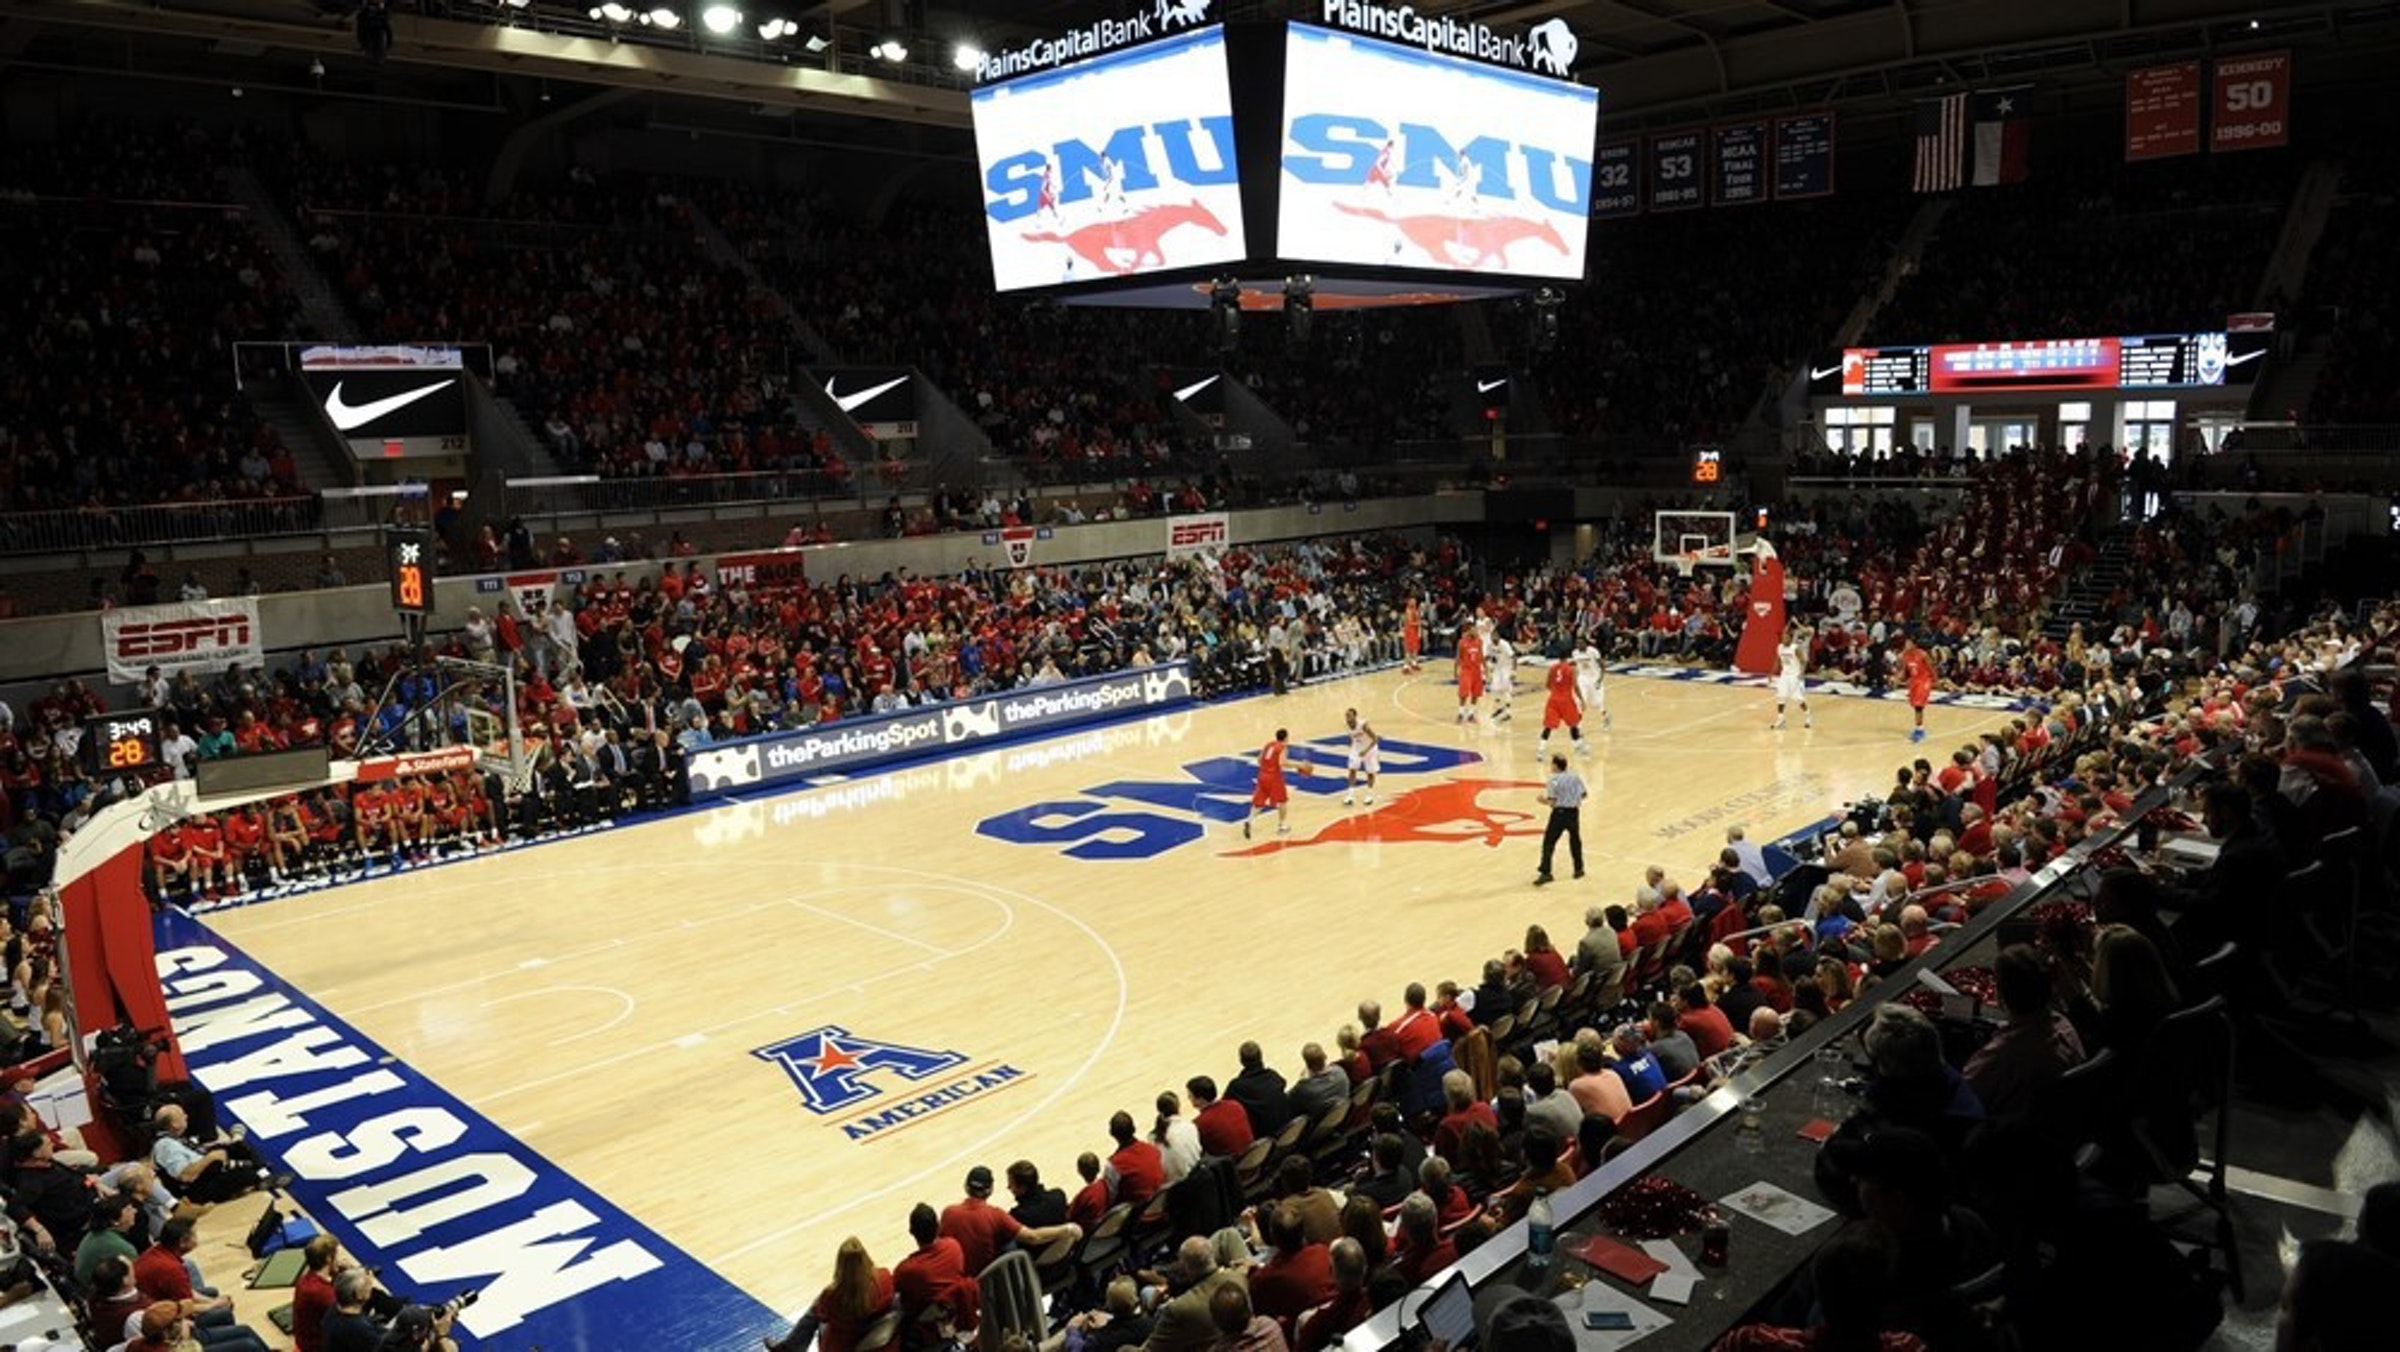 SMU - Moody Coliseum in Beyond Dallas